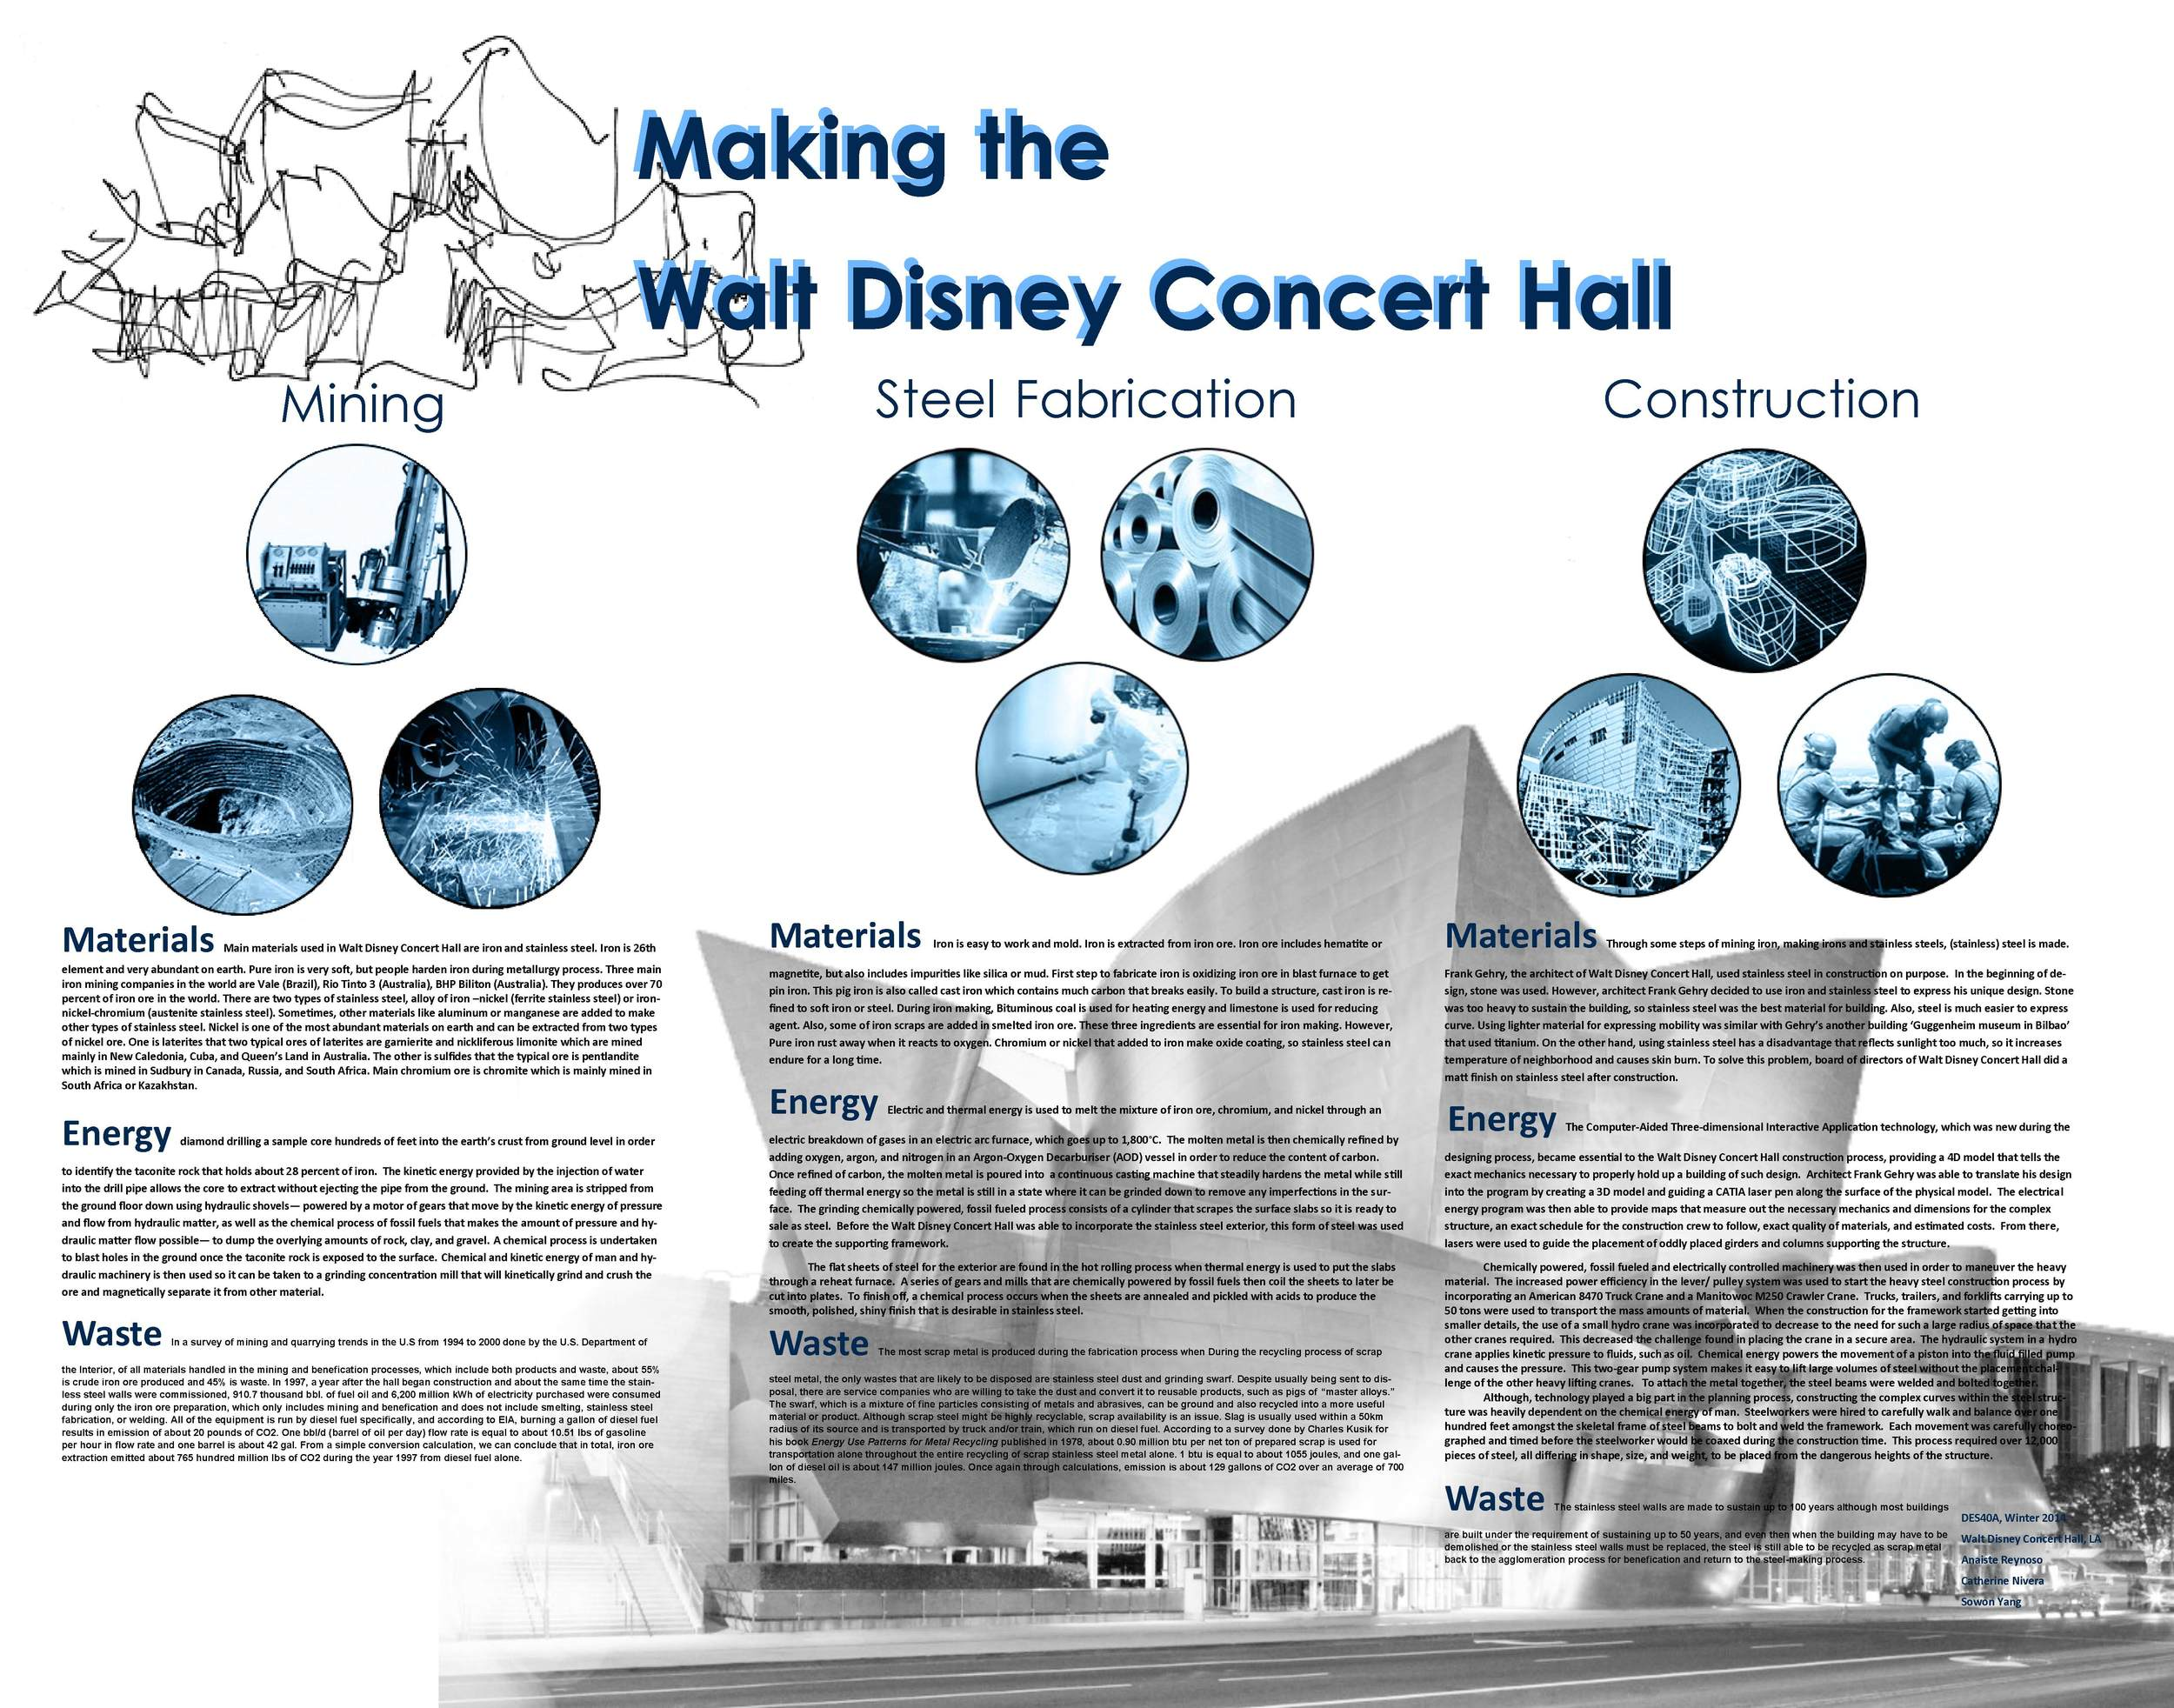 Walt Disney Concert Hall Life Cycle